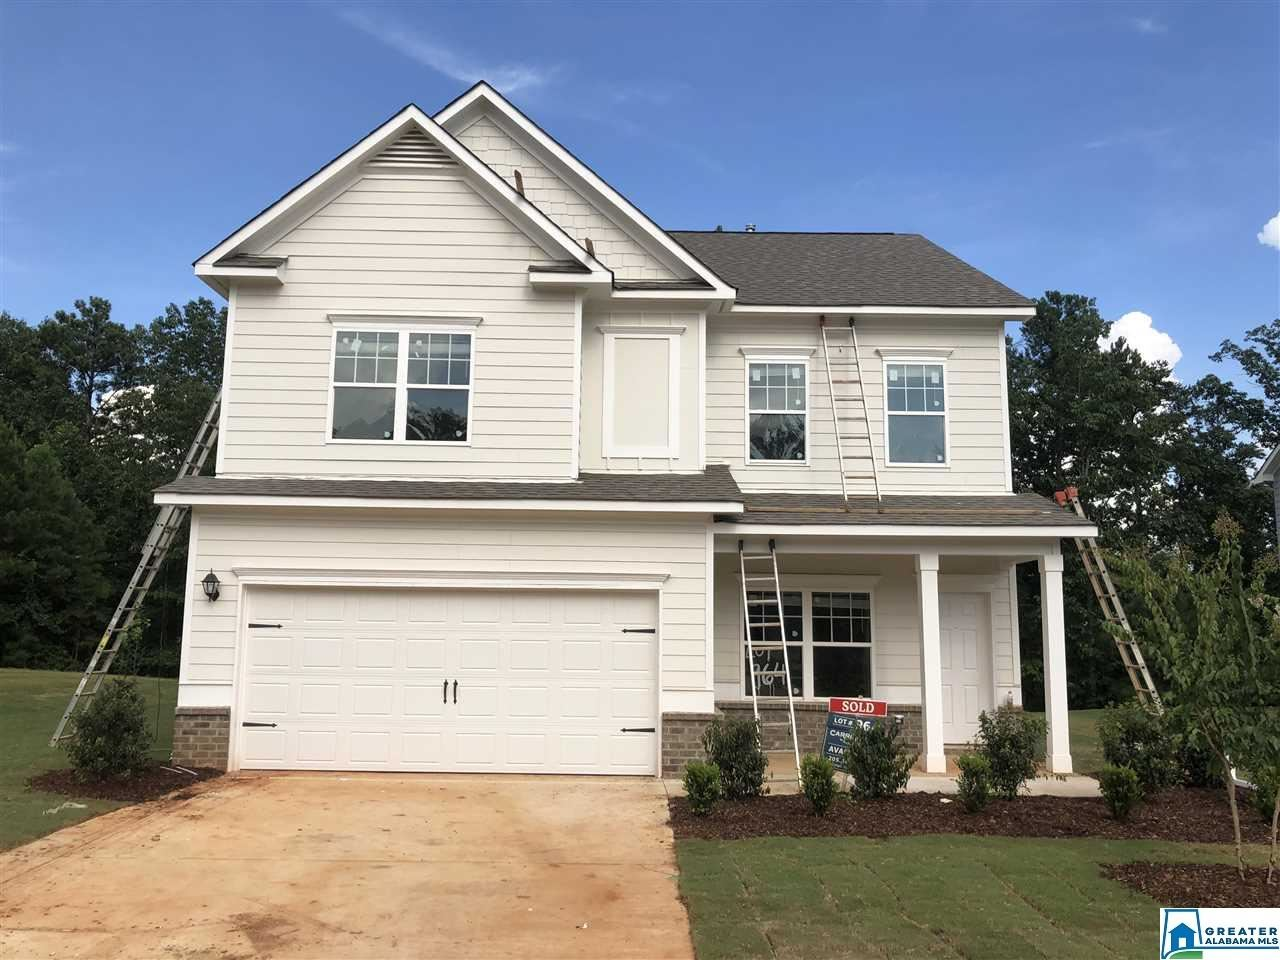 335 LAKERIDGE DR, Trussville, AL 35173 - #: 876936